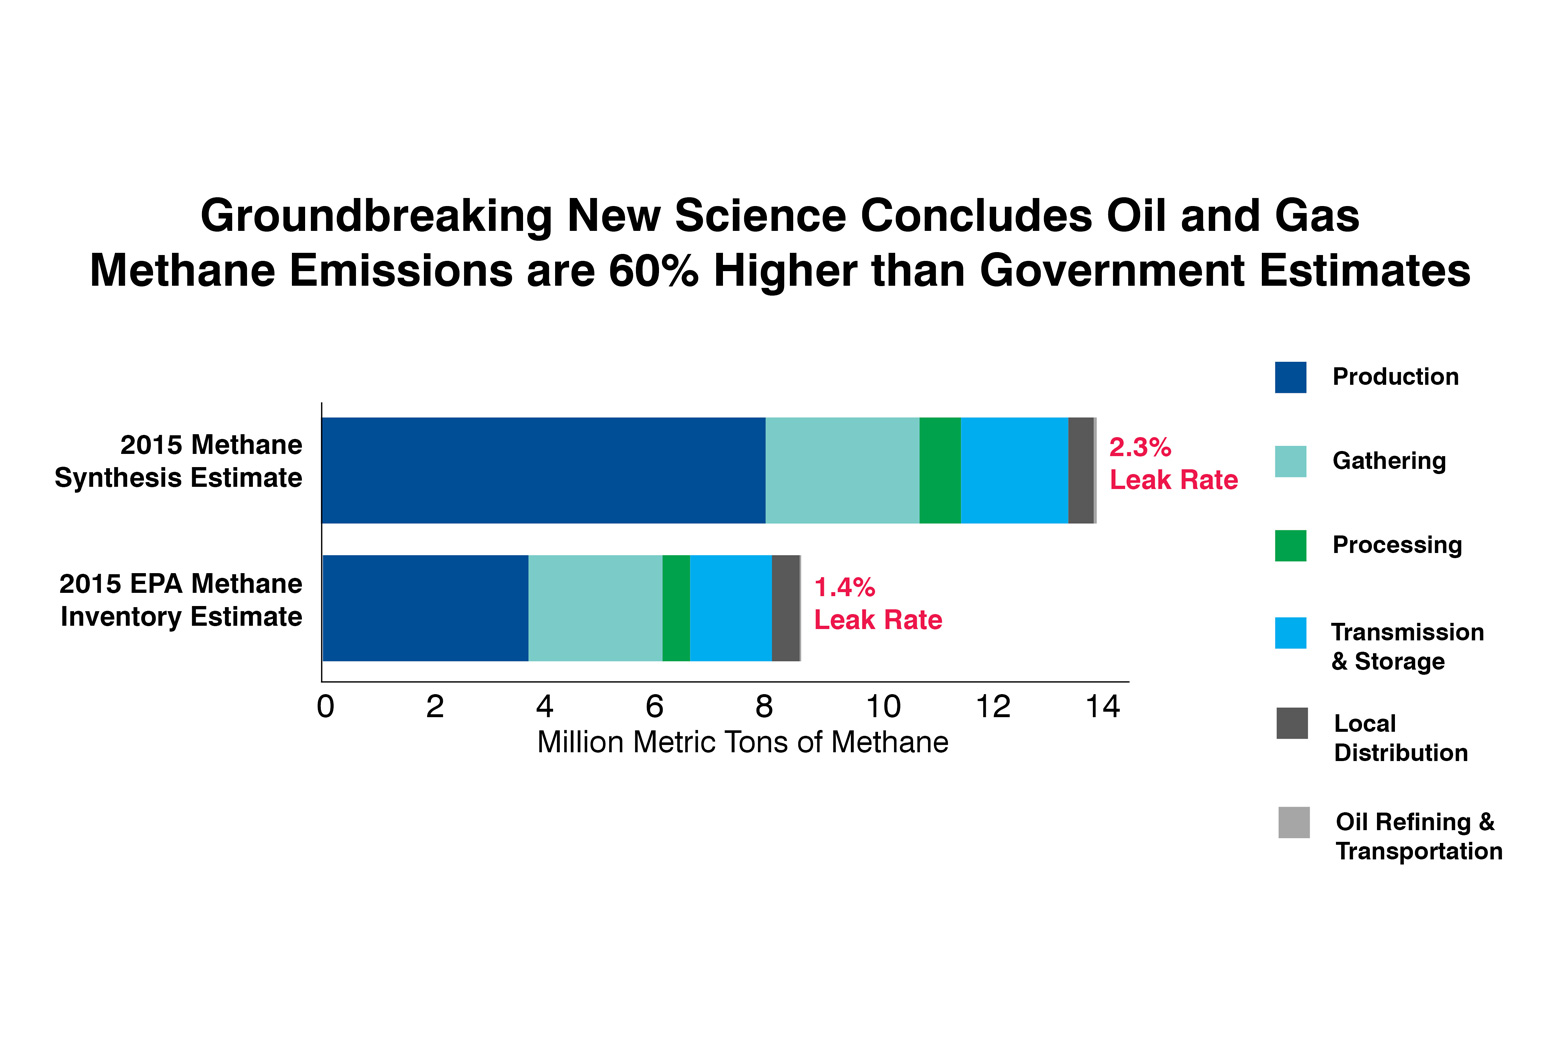 Bar graph showing methane emissions are 60% higher than government estimates